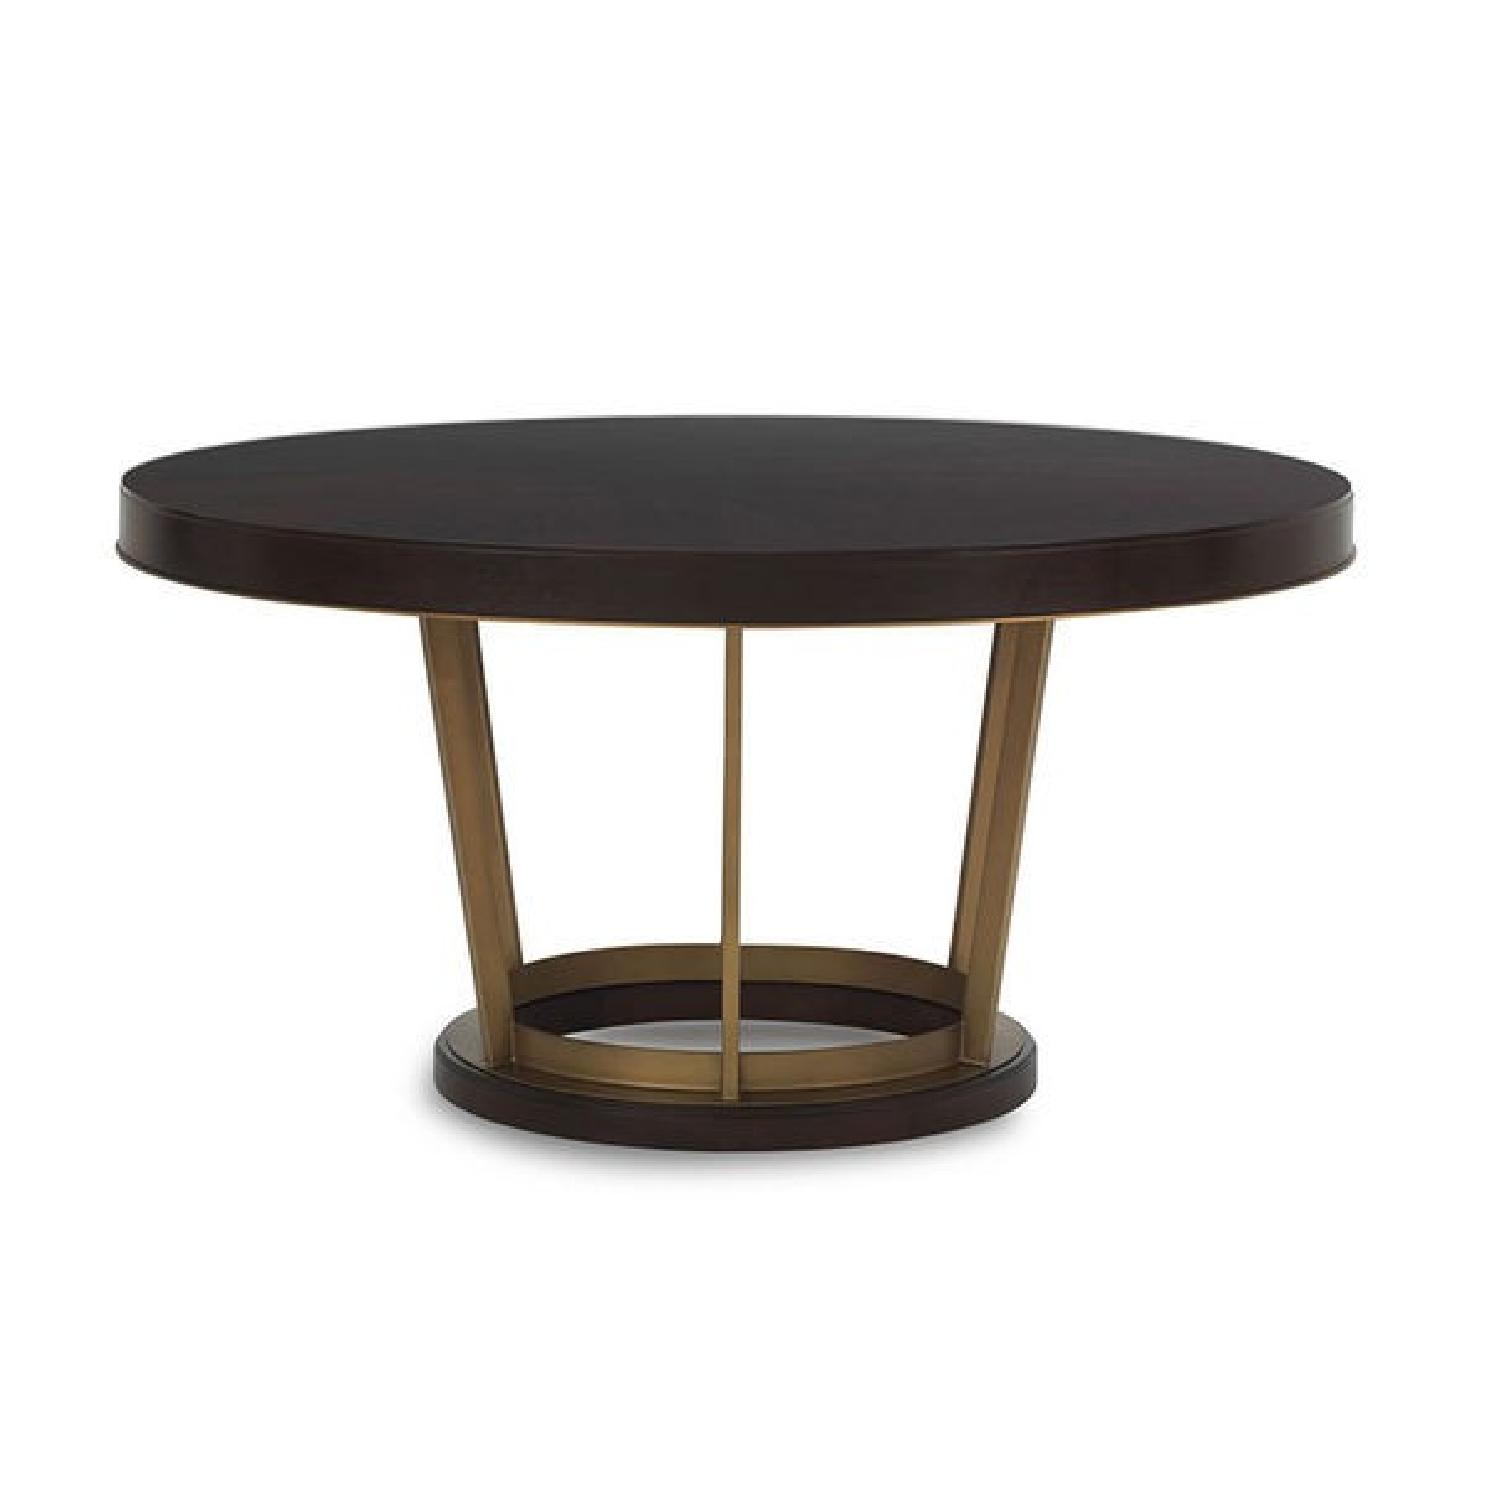 Mitchell Gold + Bob Williams Dealney Dining Table